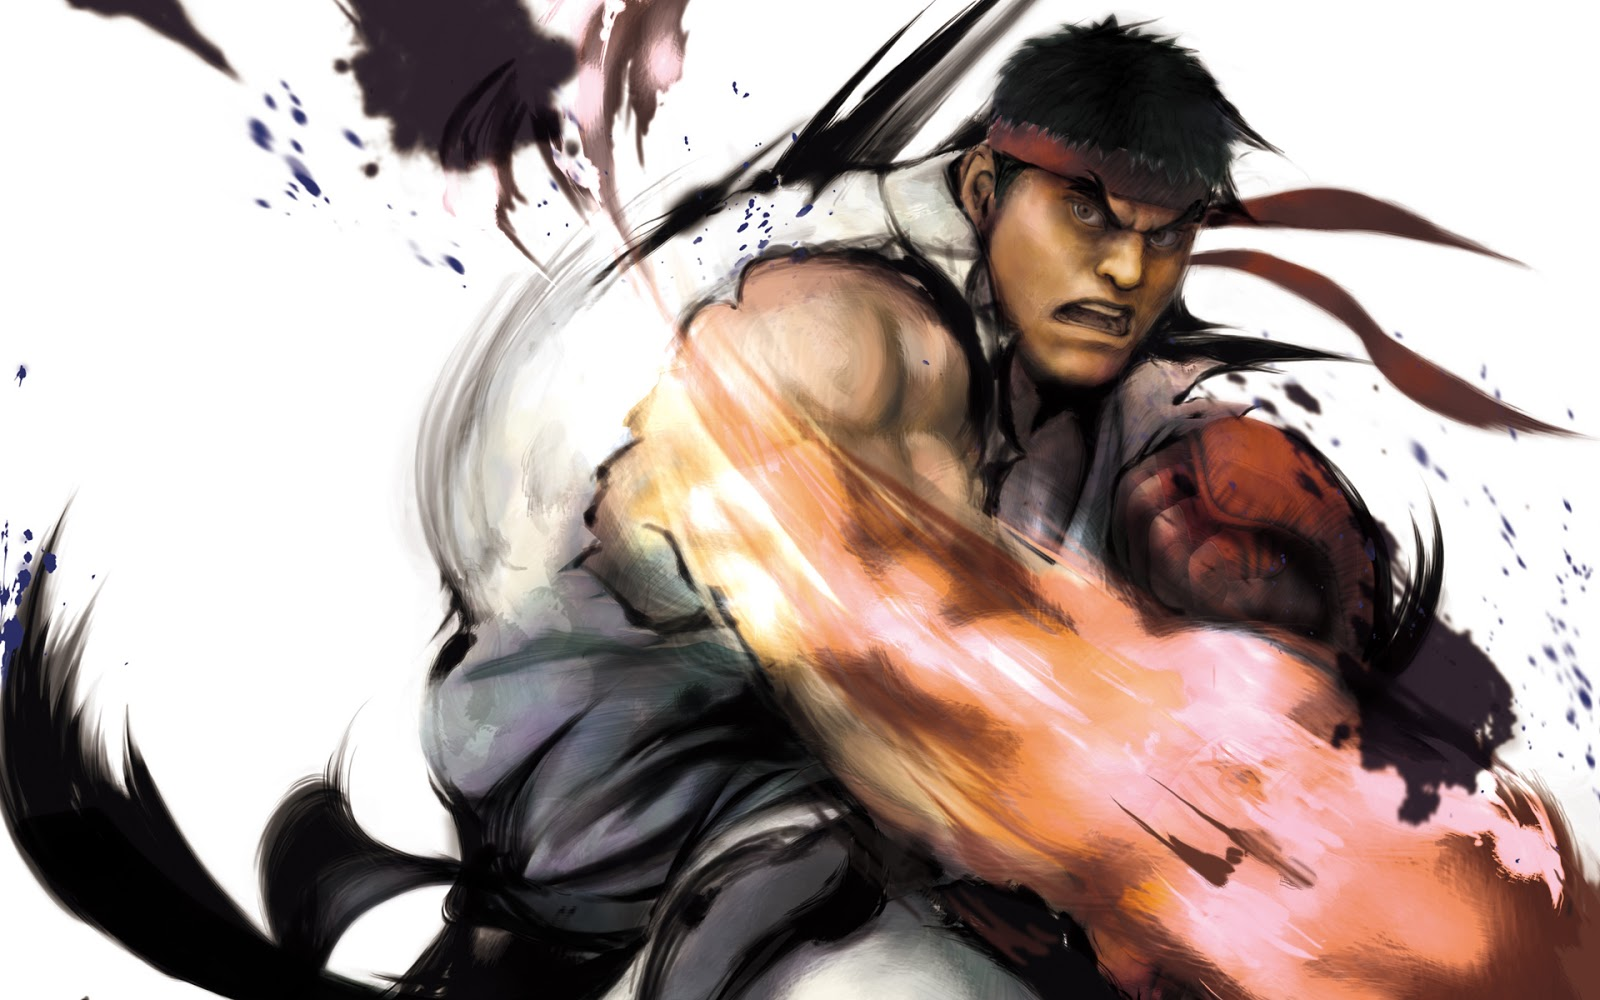 street fighter iv game wallpapers - Street Fighter 4 wallpapers GameWallpapers